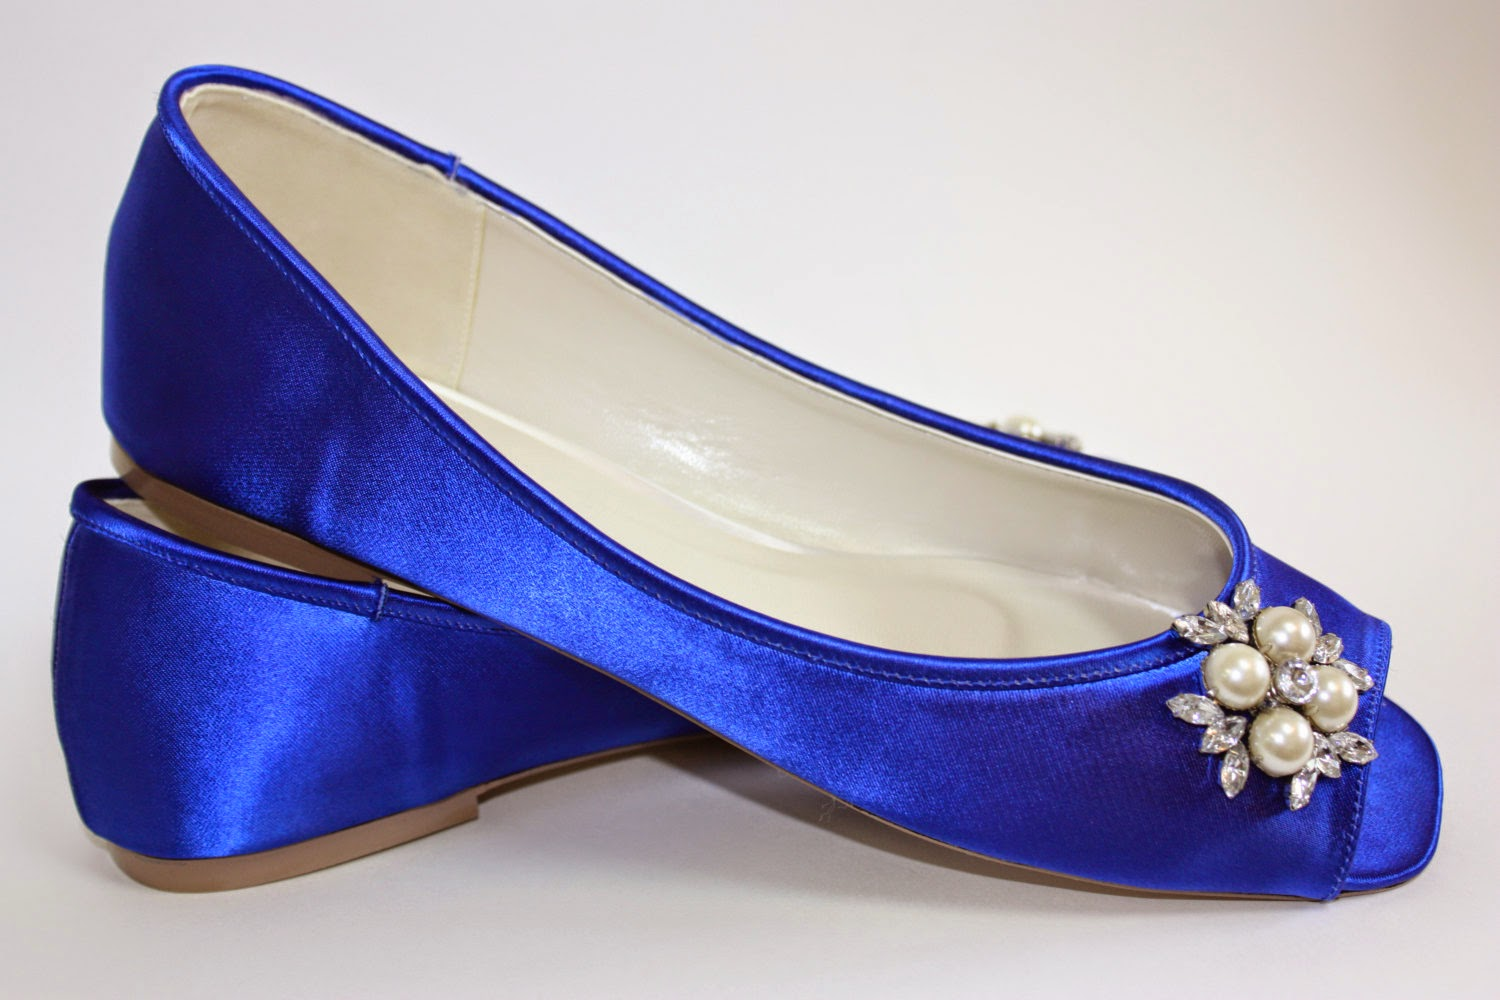 Image result for royal blue wedding shoes for bride